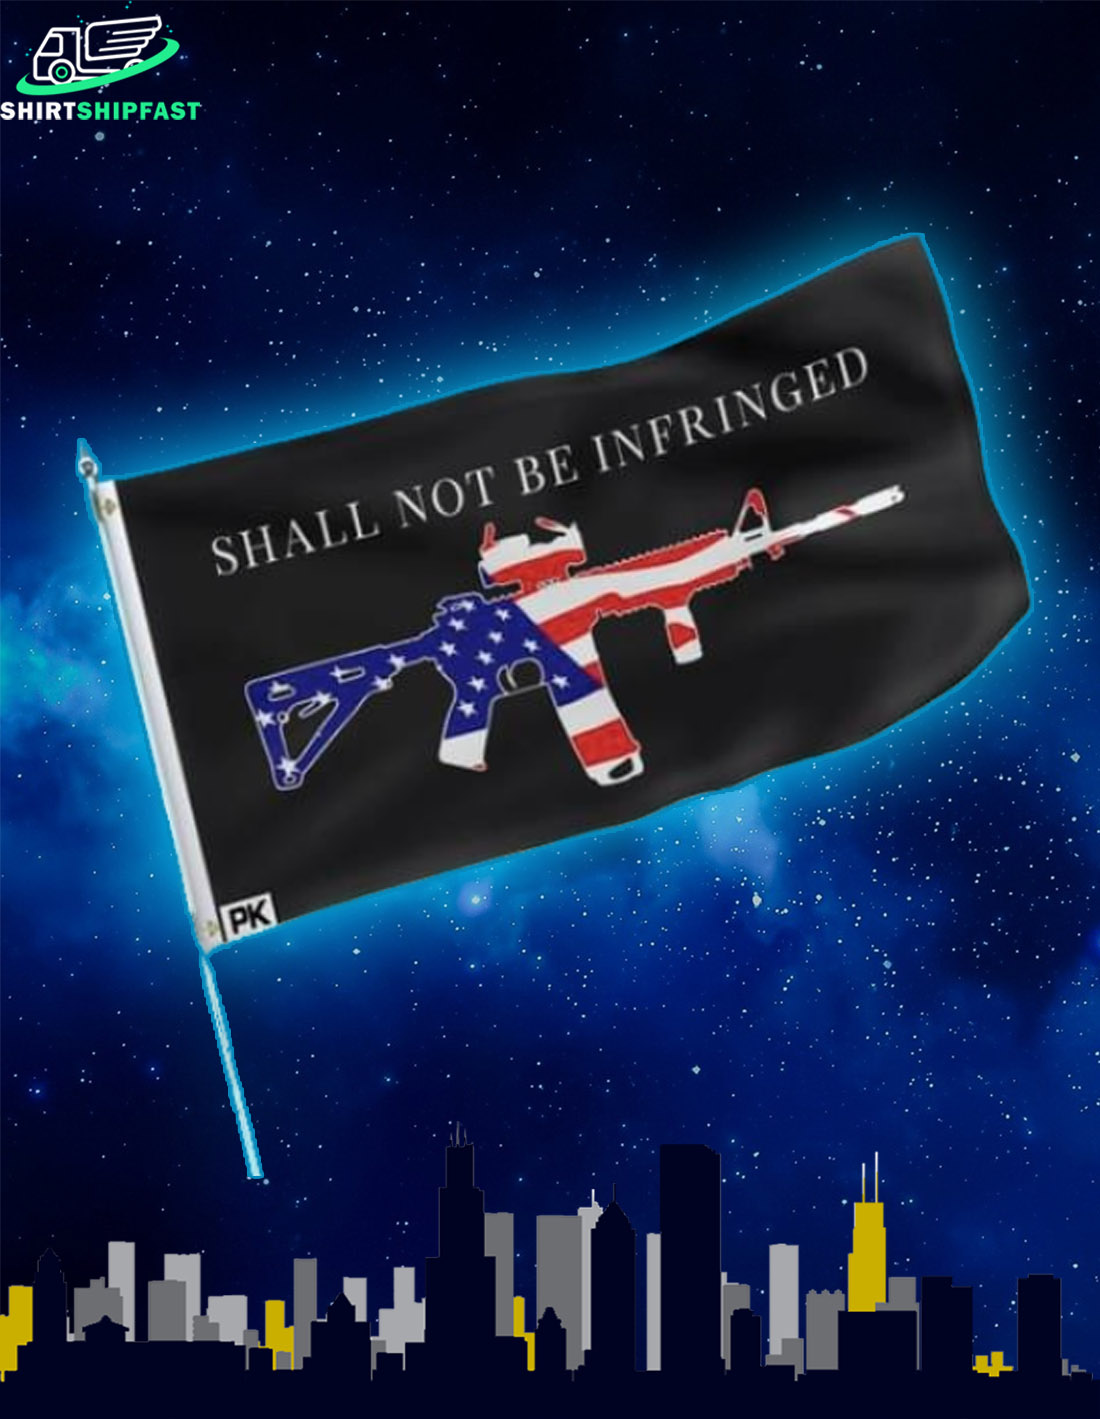 Gun Shall not be infringed flag - Picture 2